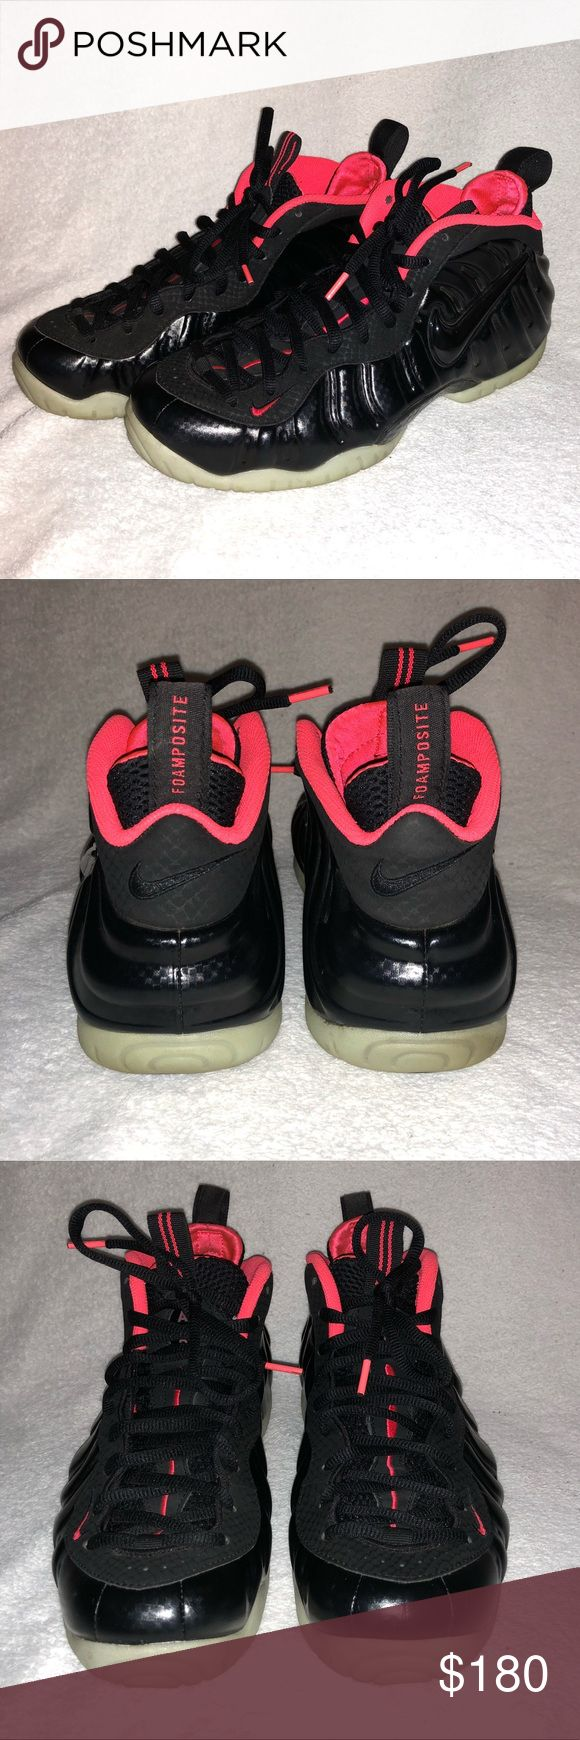 NIKE YEEZY FOAMPOSITE NIKE YEEZY FOAMPOSITE GOOD CONDITION SIZE US MEN 9.5 Nike Shoes Sneakers